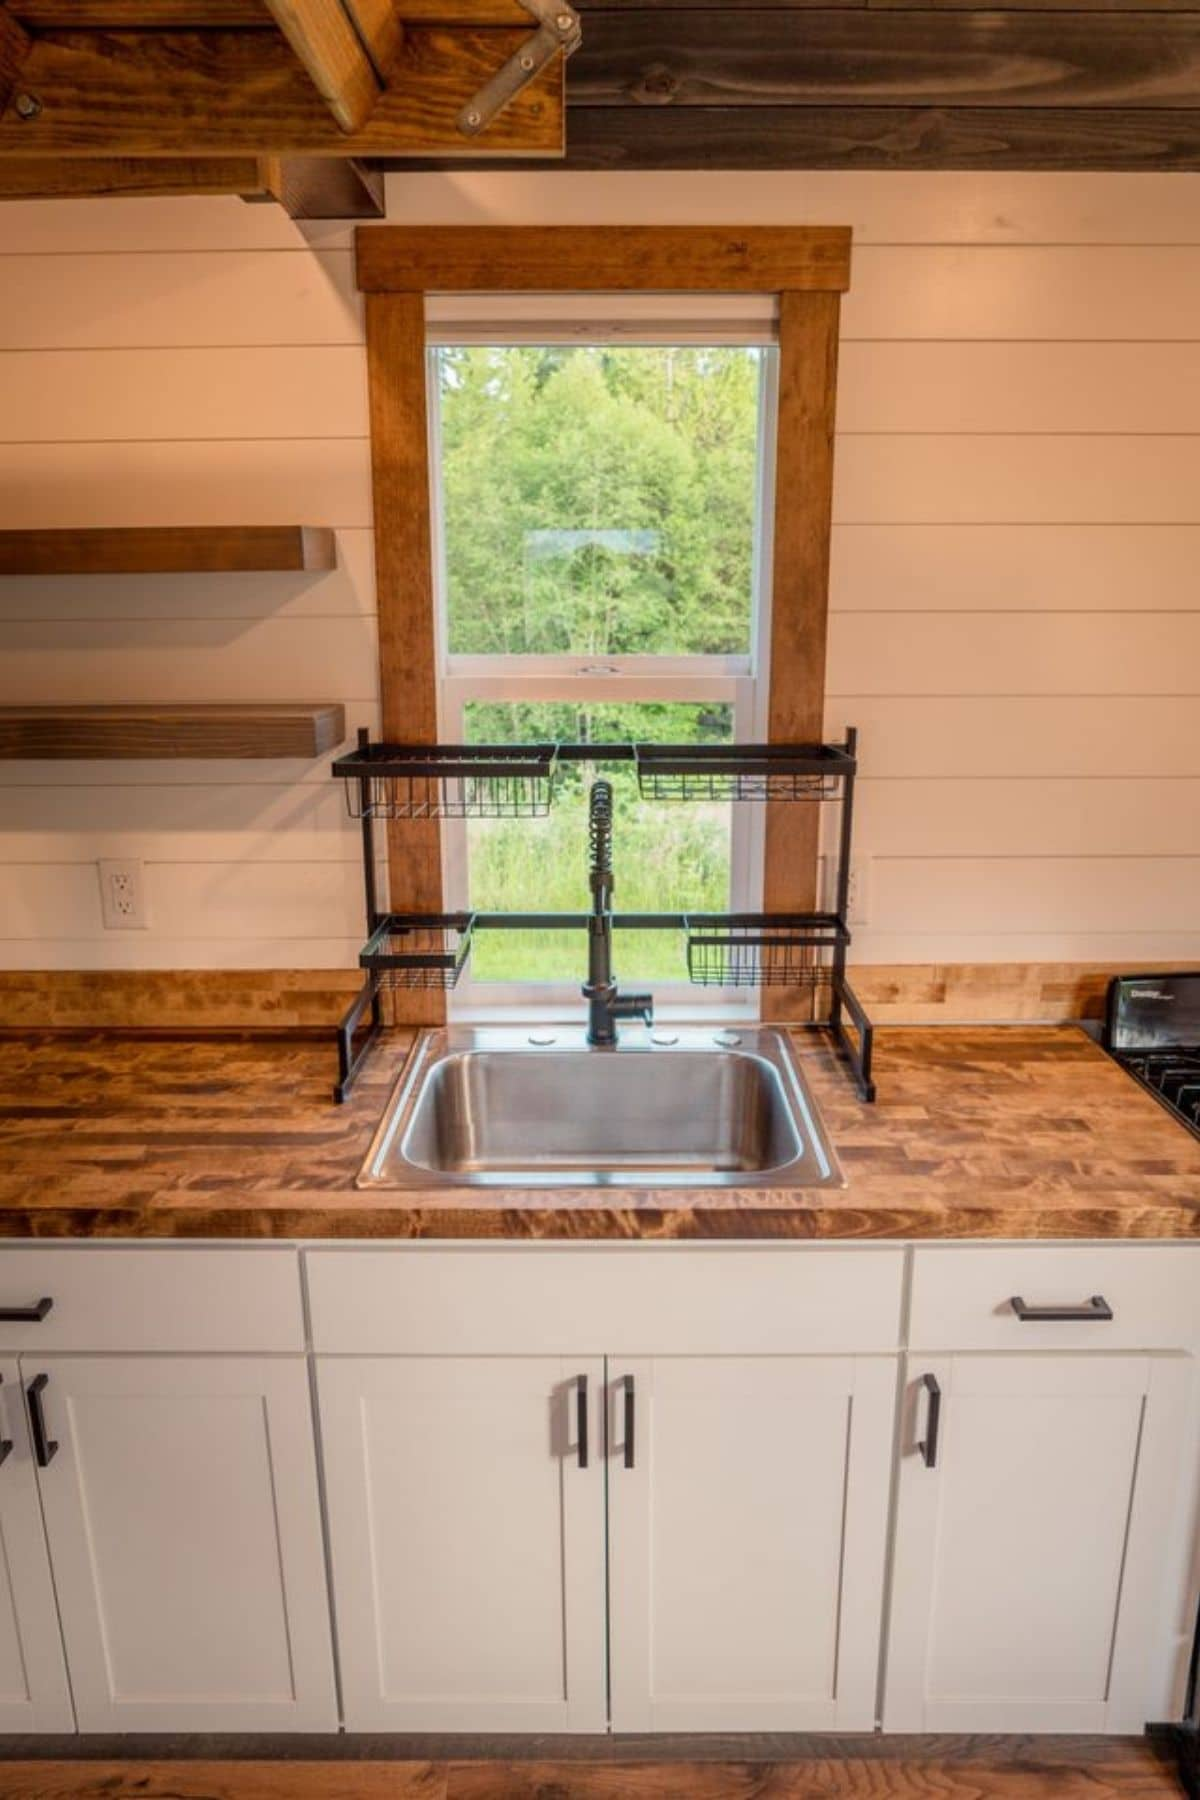 Stainless steel sink in front of window with black matte rack above